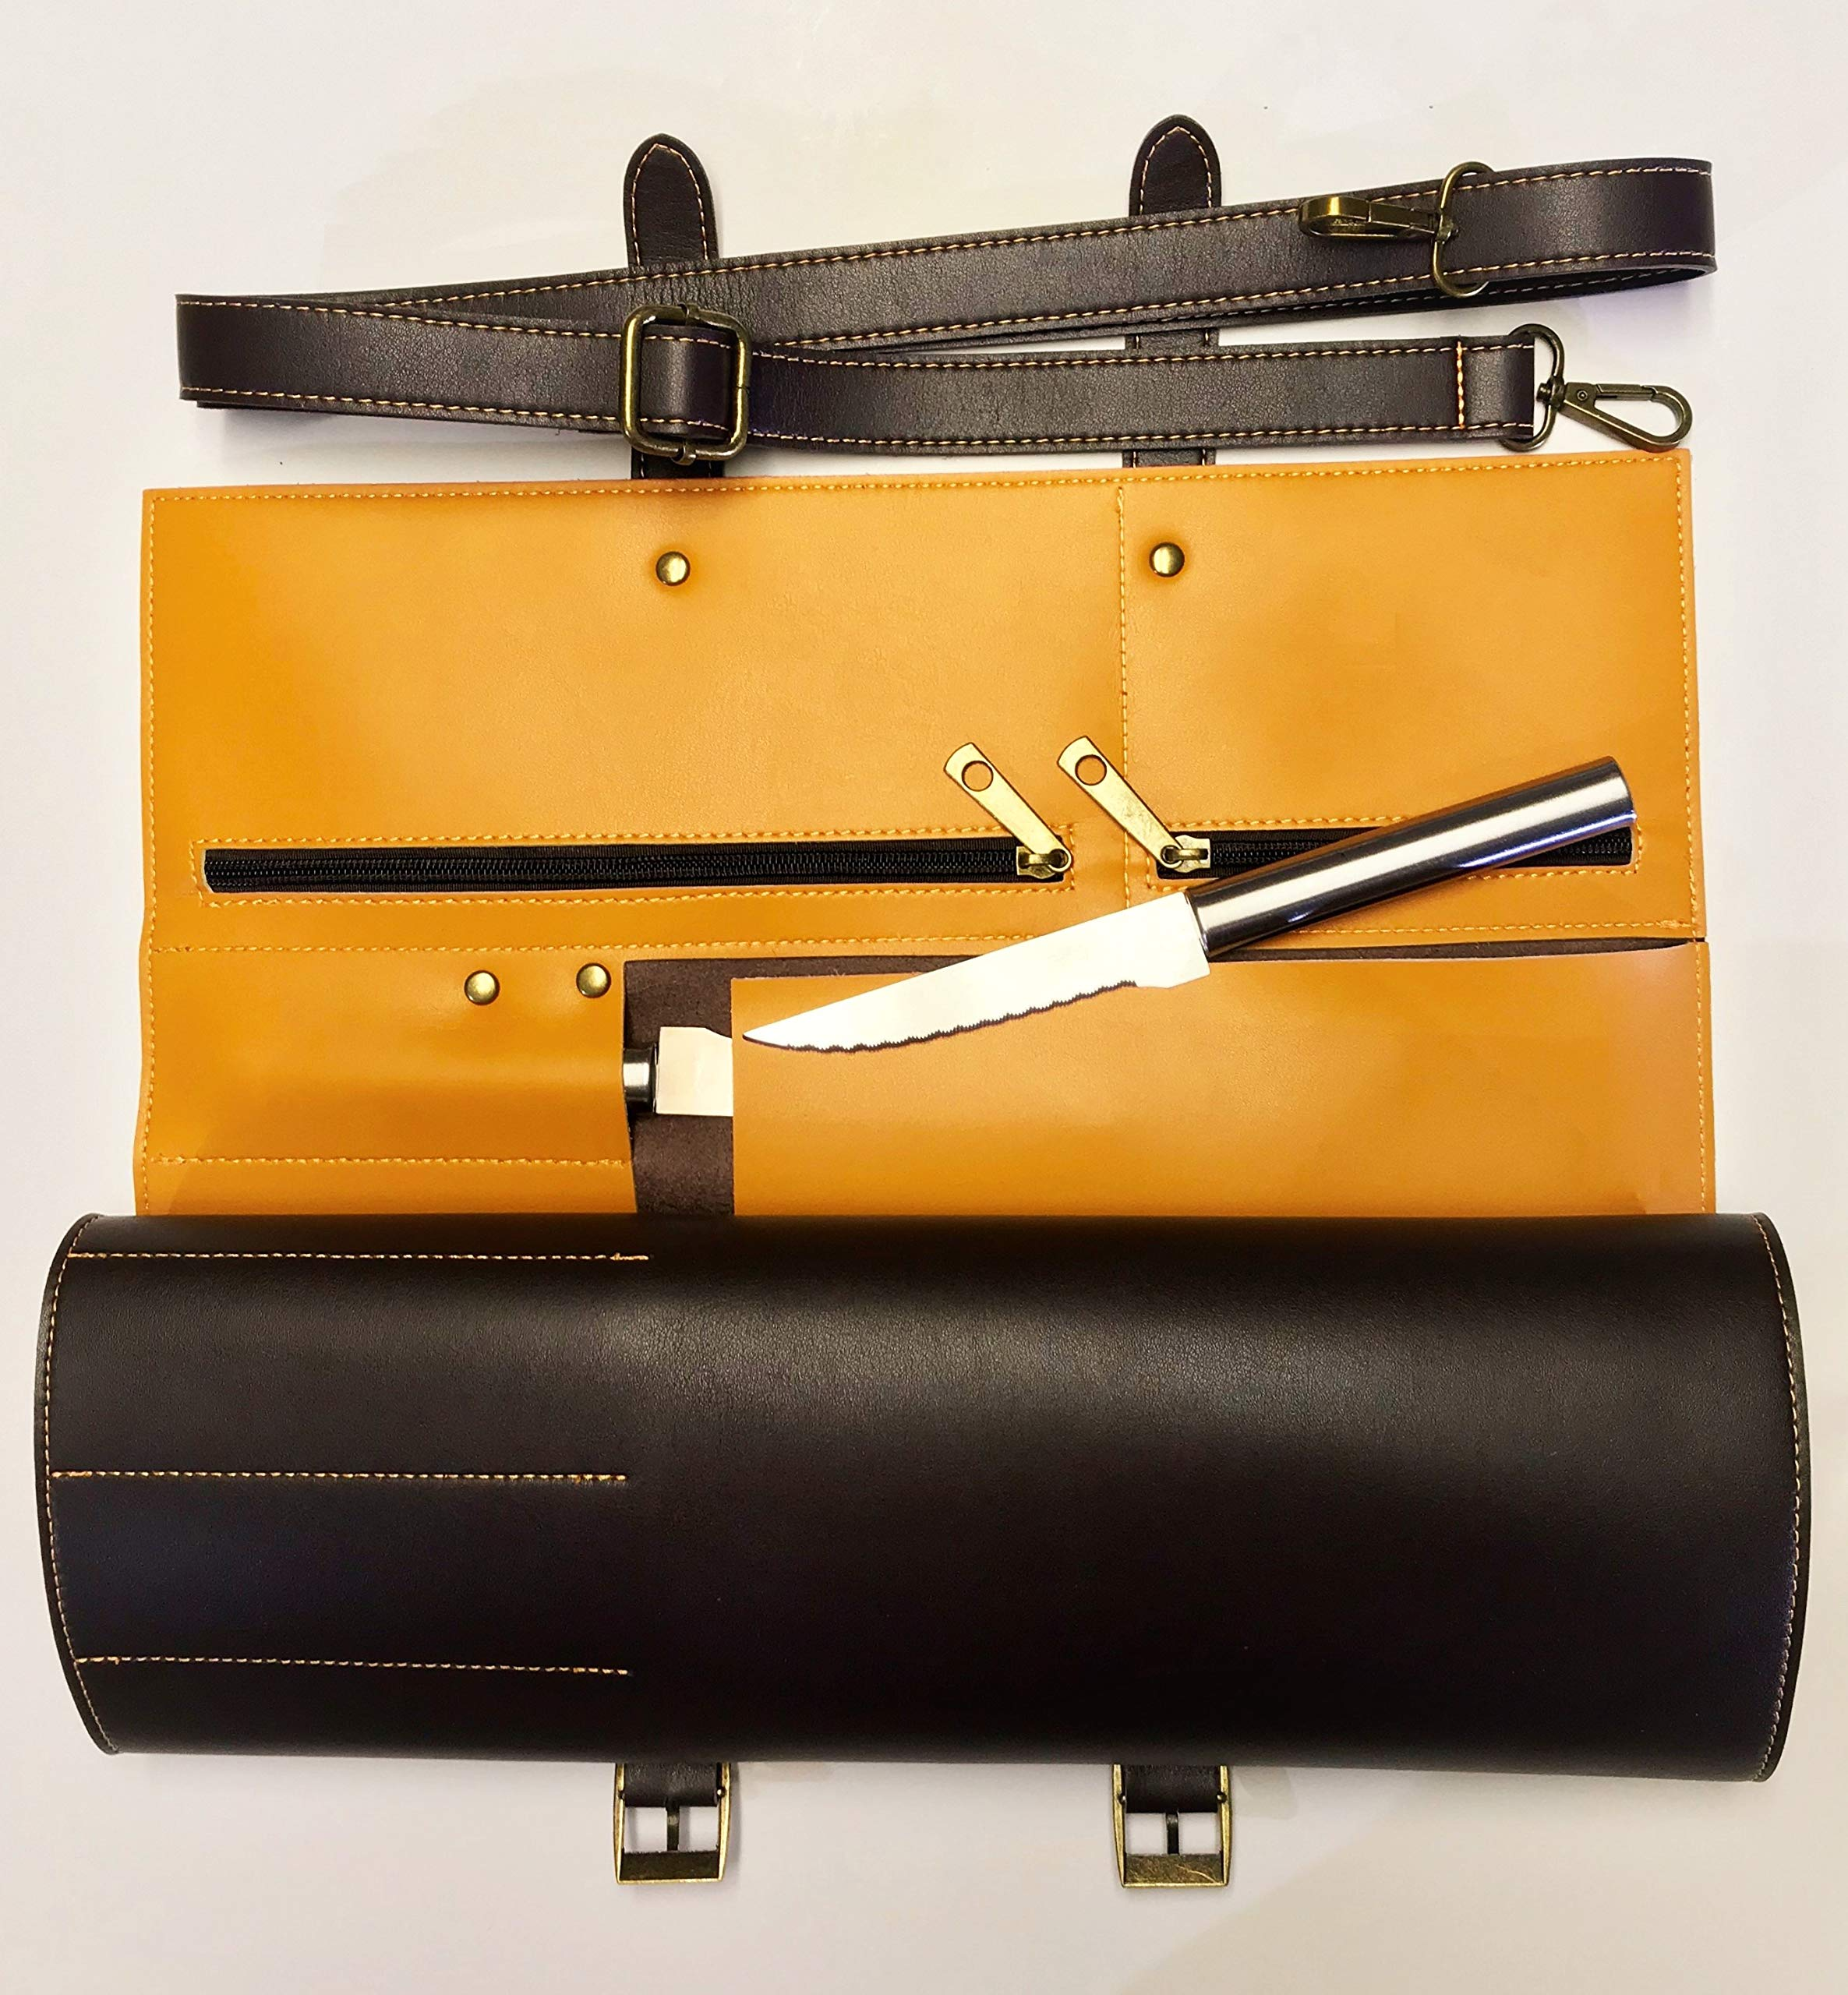 MiM Houston Chef Knife Bag | Large Chef Knife Roll Bag | Fine Leather | W/Business Card Slot | Dark Oak by MiM Houston (Image #4)